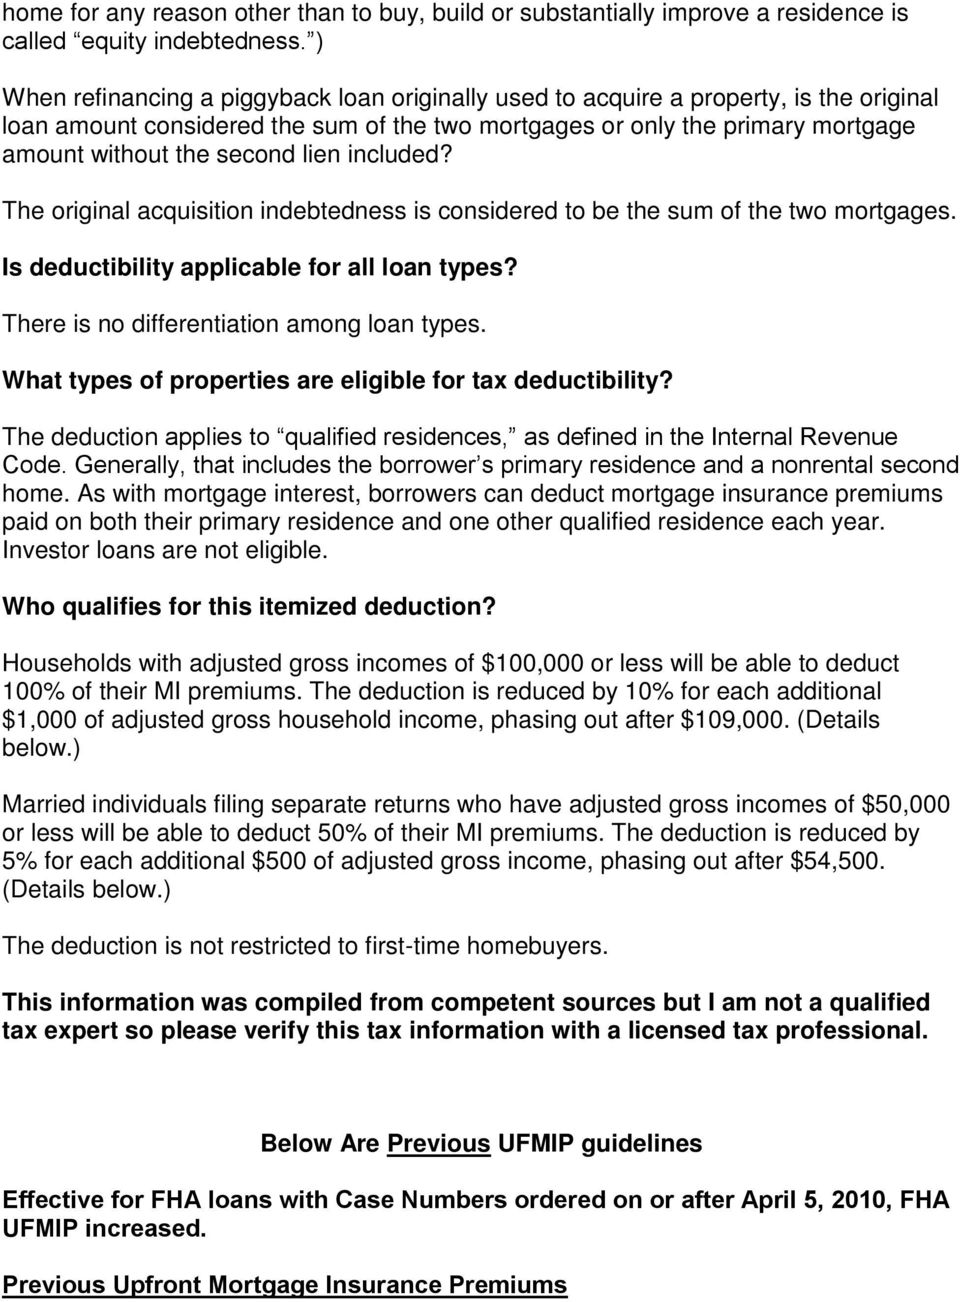 lien included? The original acquisition indebtedness is considered to be the sum of the two mortgages. Is deductibility applicable for all loan types? There is no differentiation among loan types.